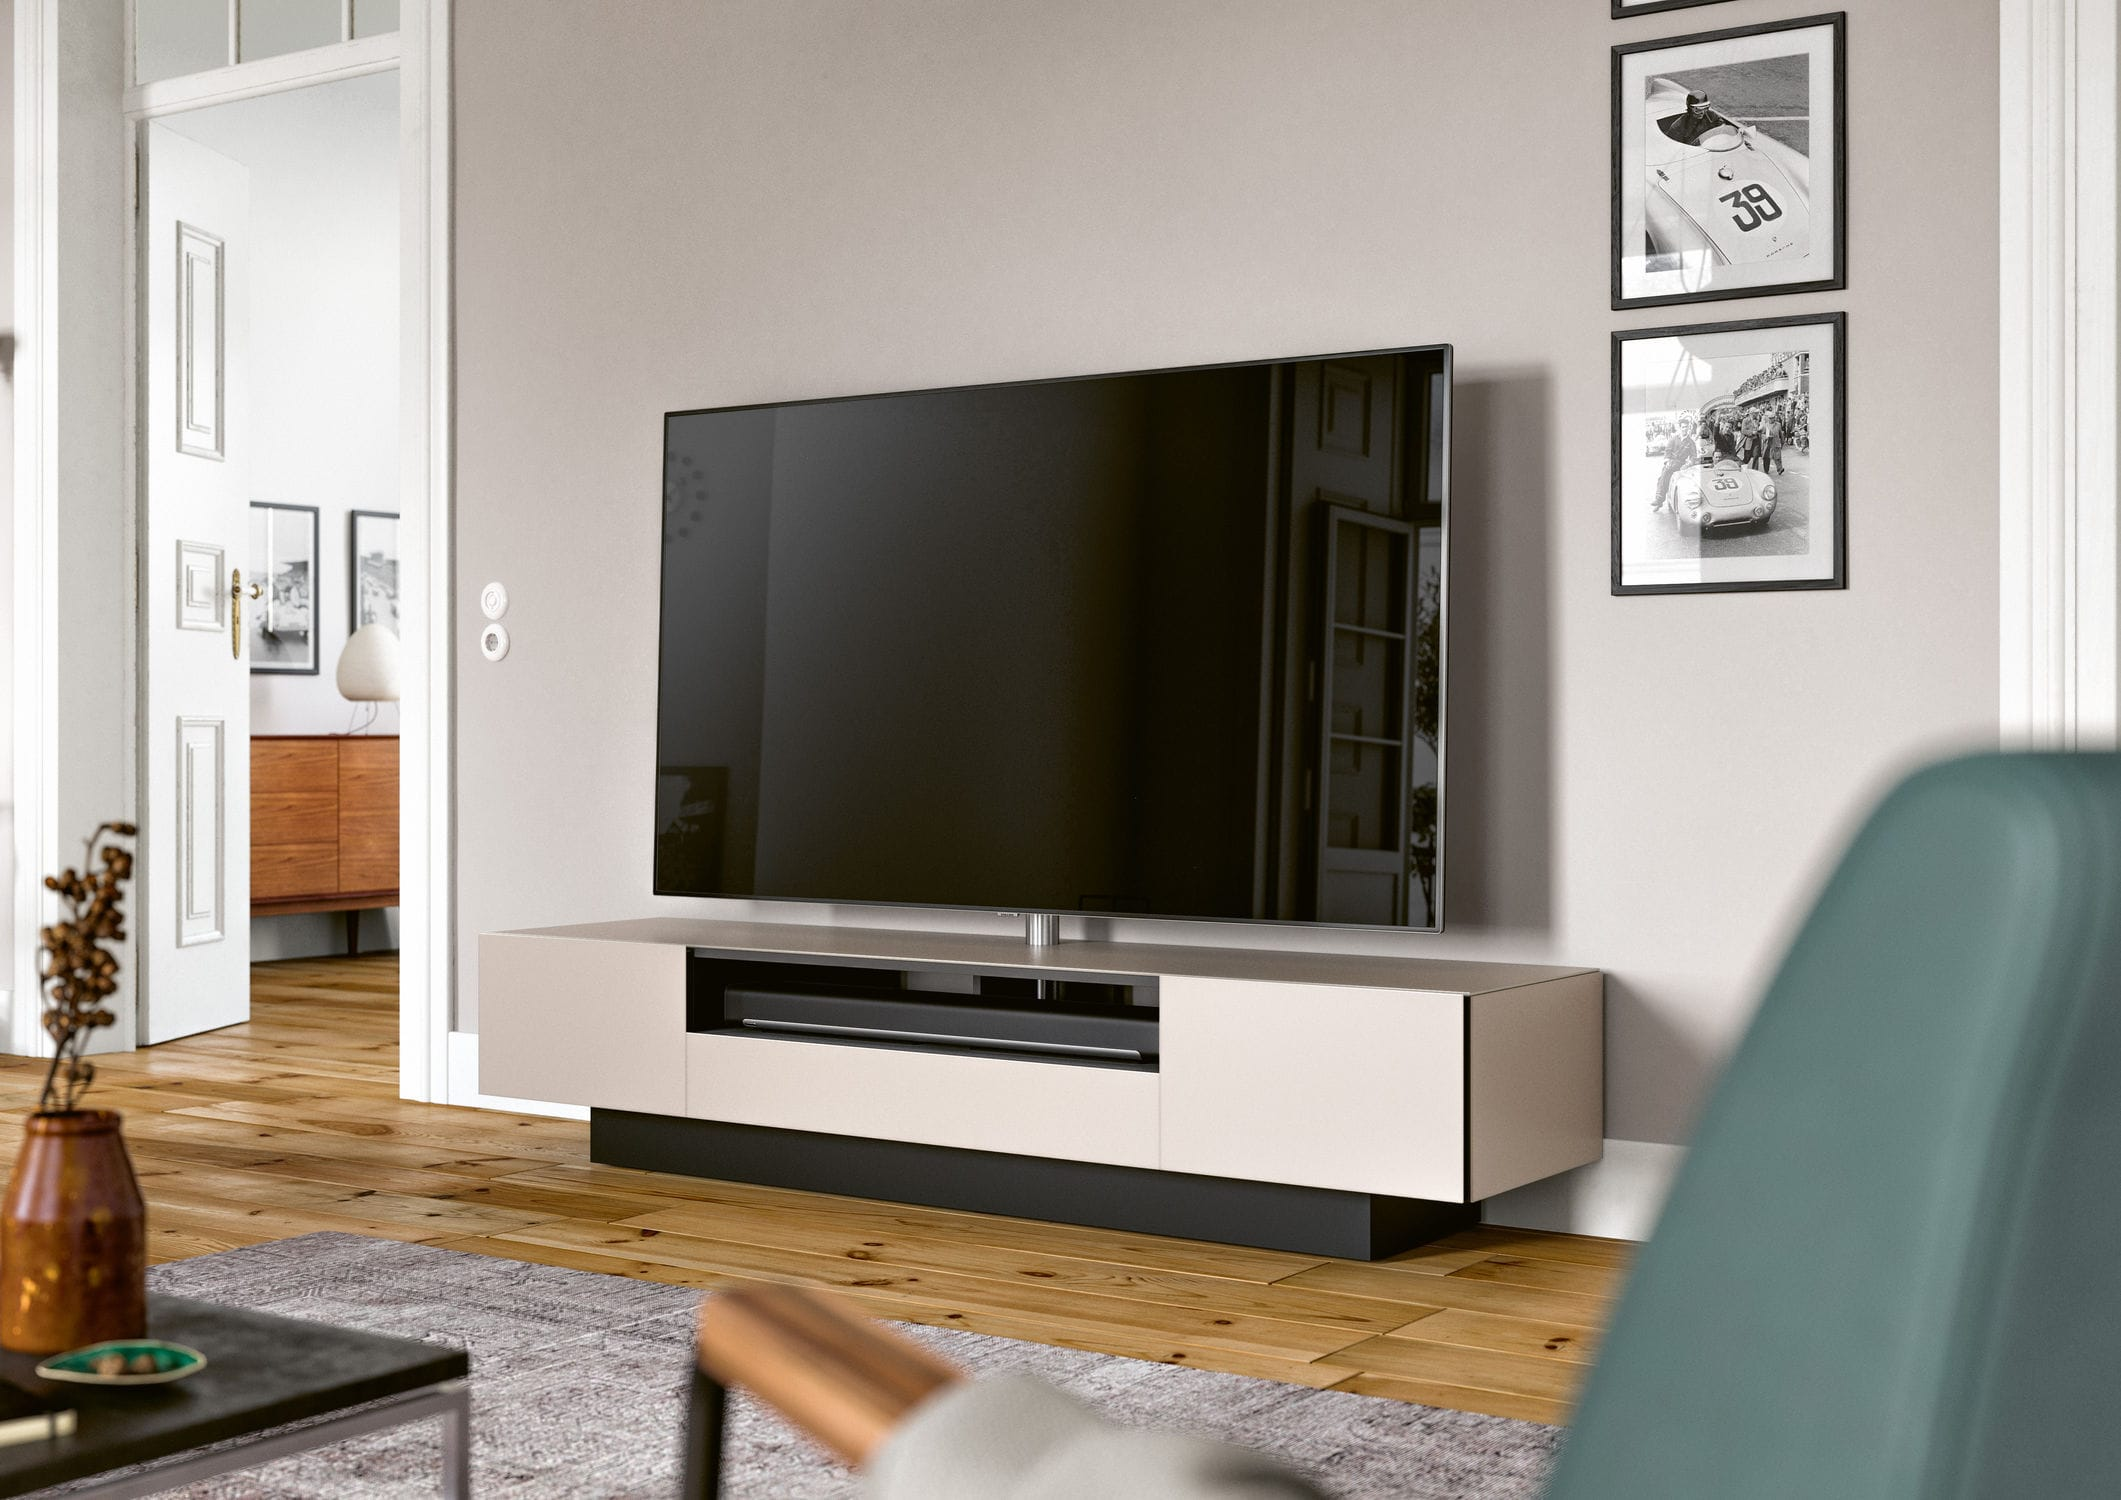 Spectral Audio Möbel Contemporary Tv Cabinet With Built In Speaker Glass Brick